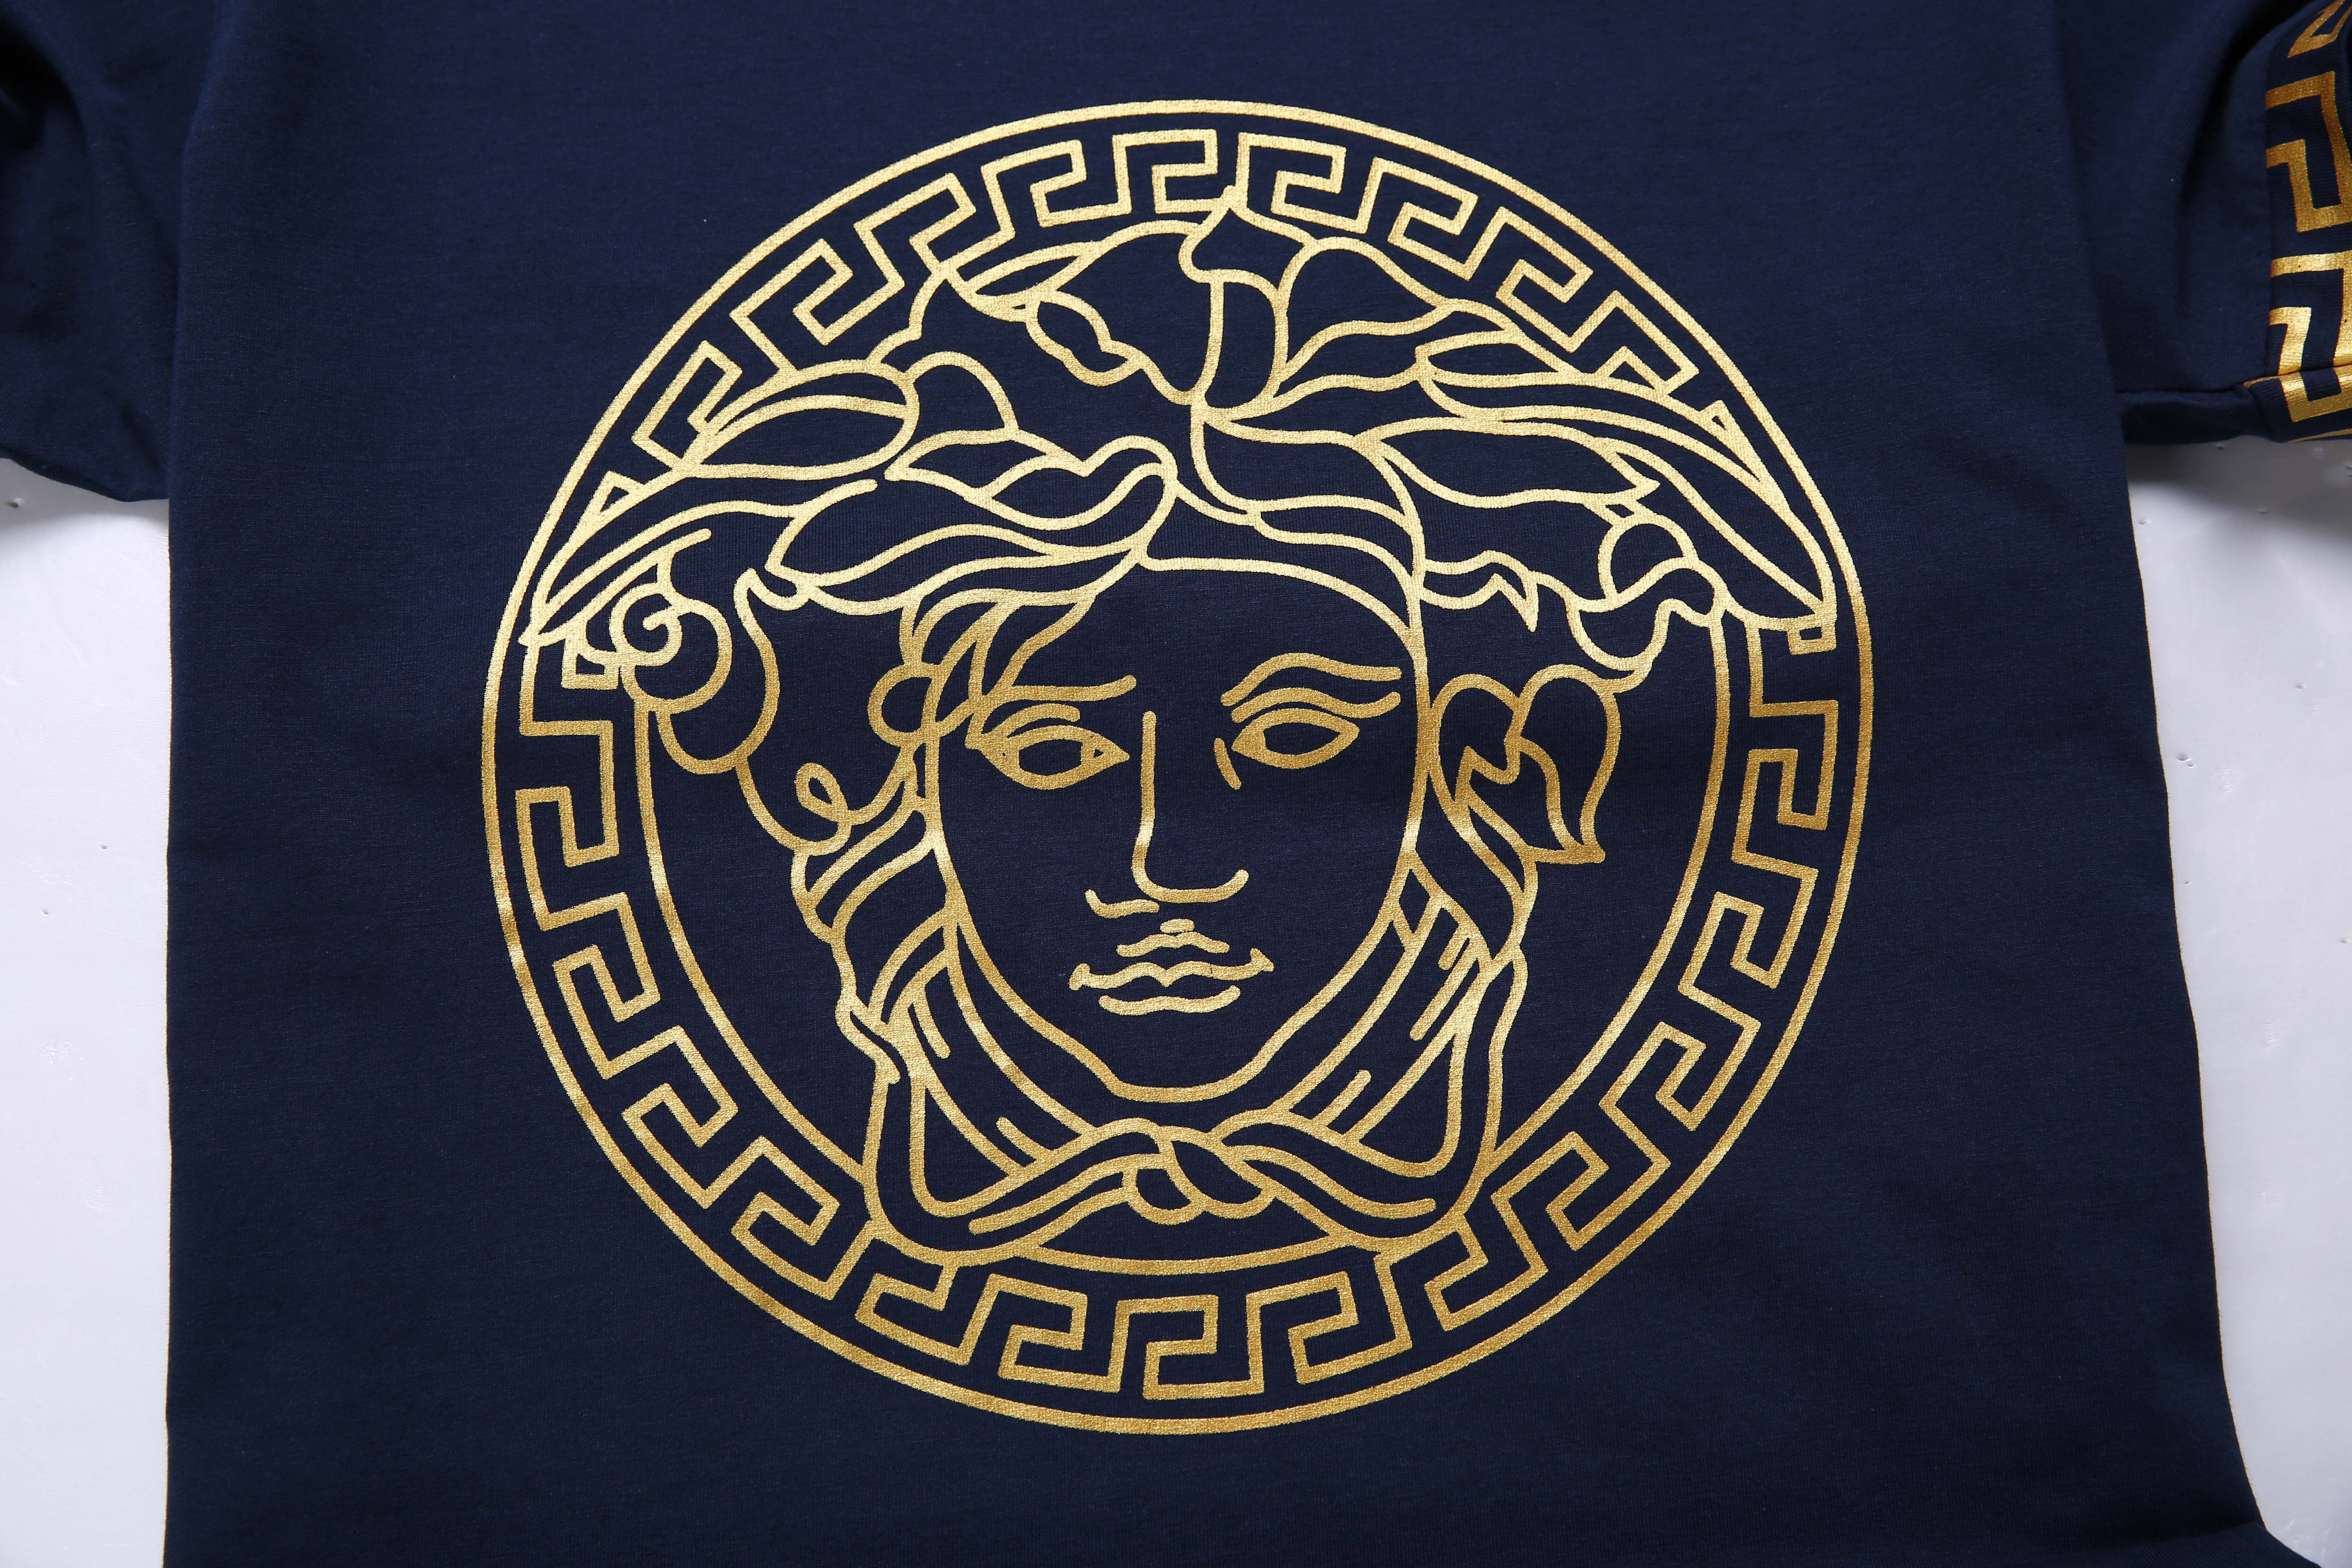 Replica Versace T-Shirts for men  256026 express shipping to malaysia, 21  USD On sale --  GT256026  from China 0a2e3f934ef1